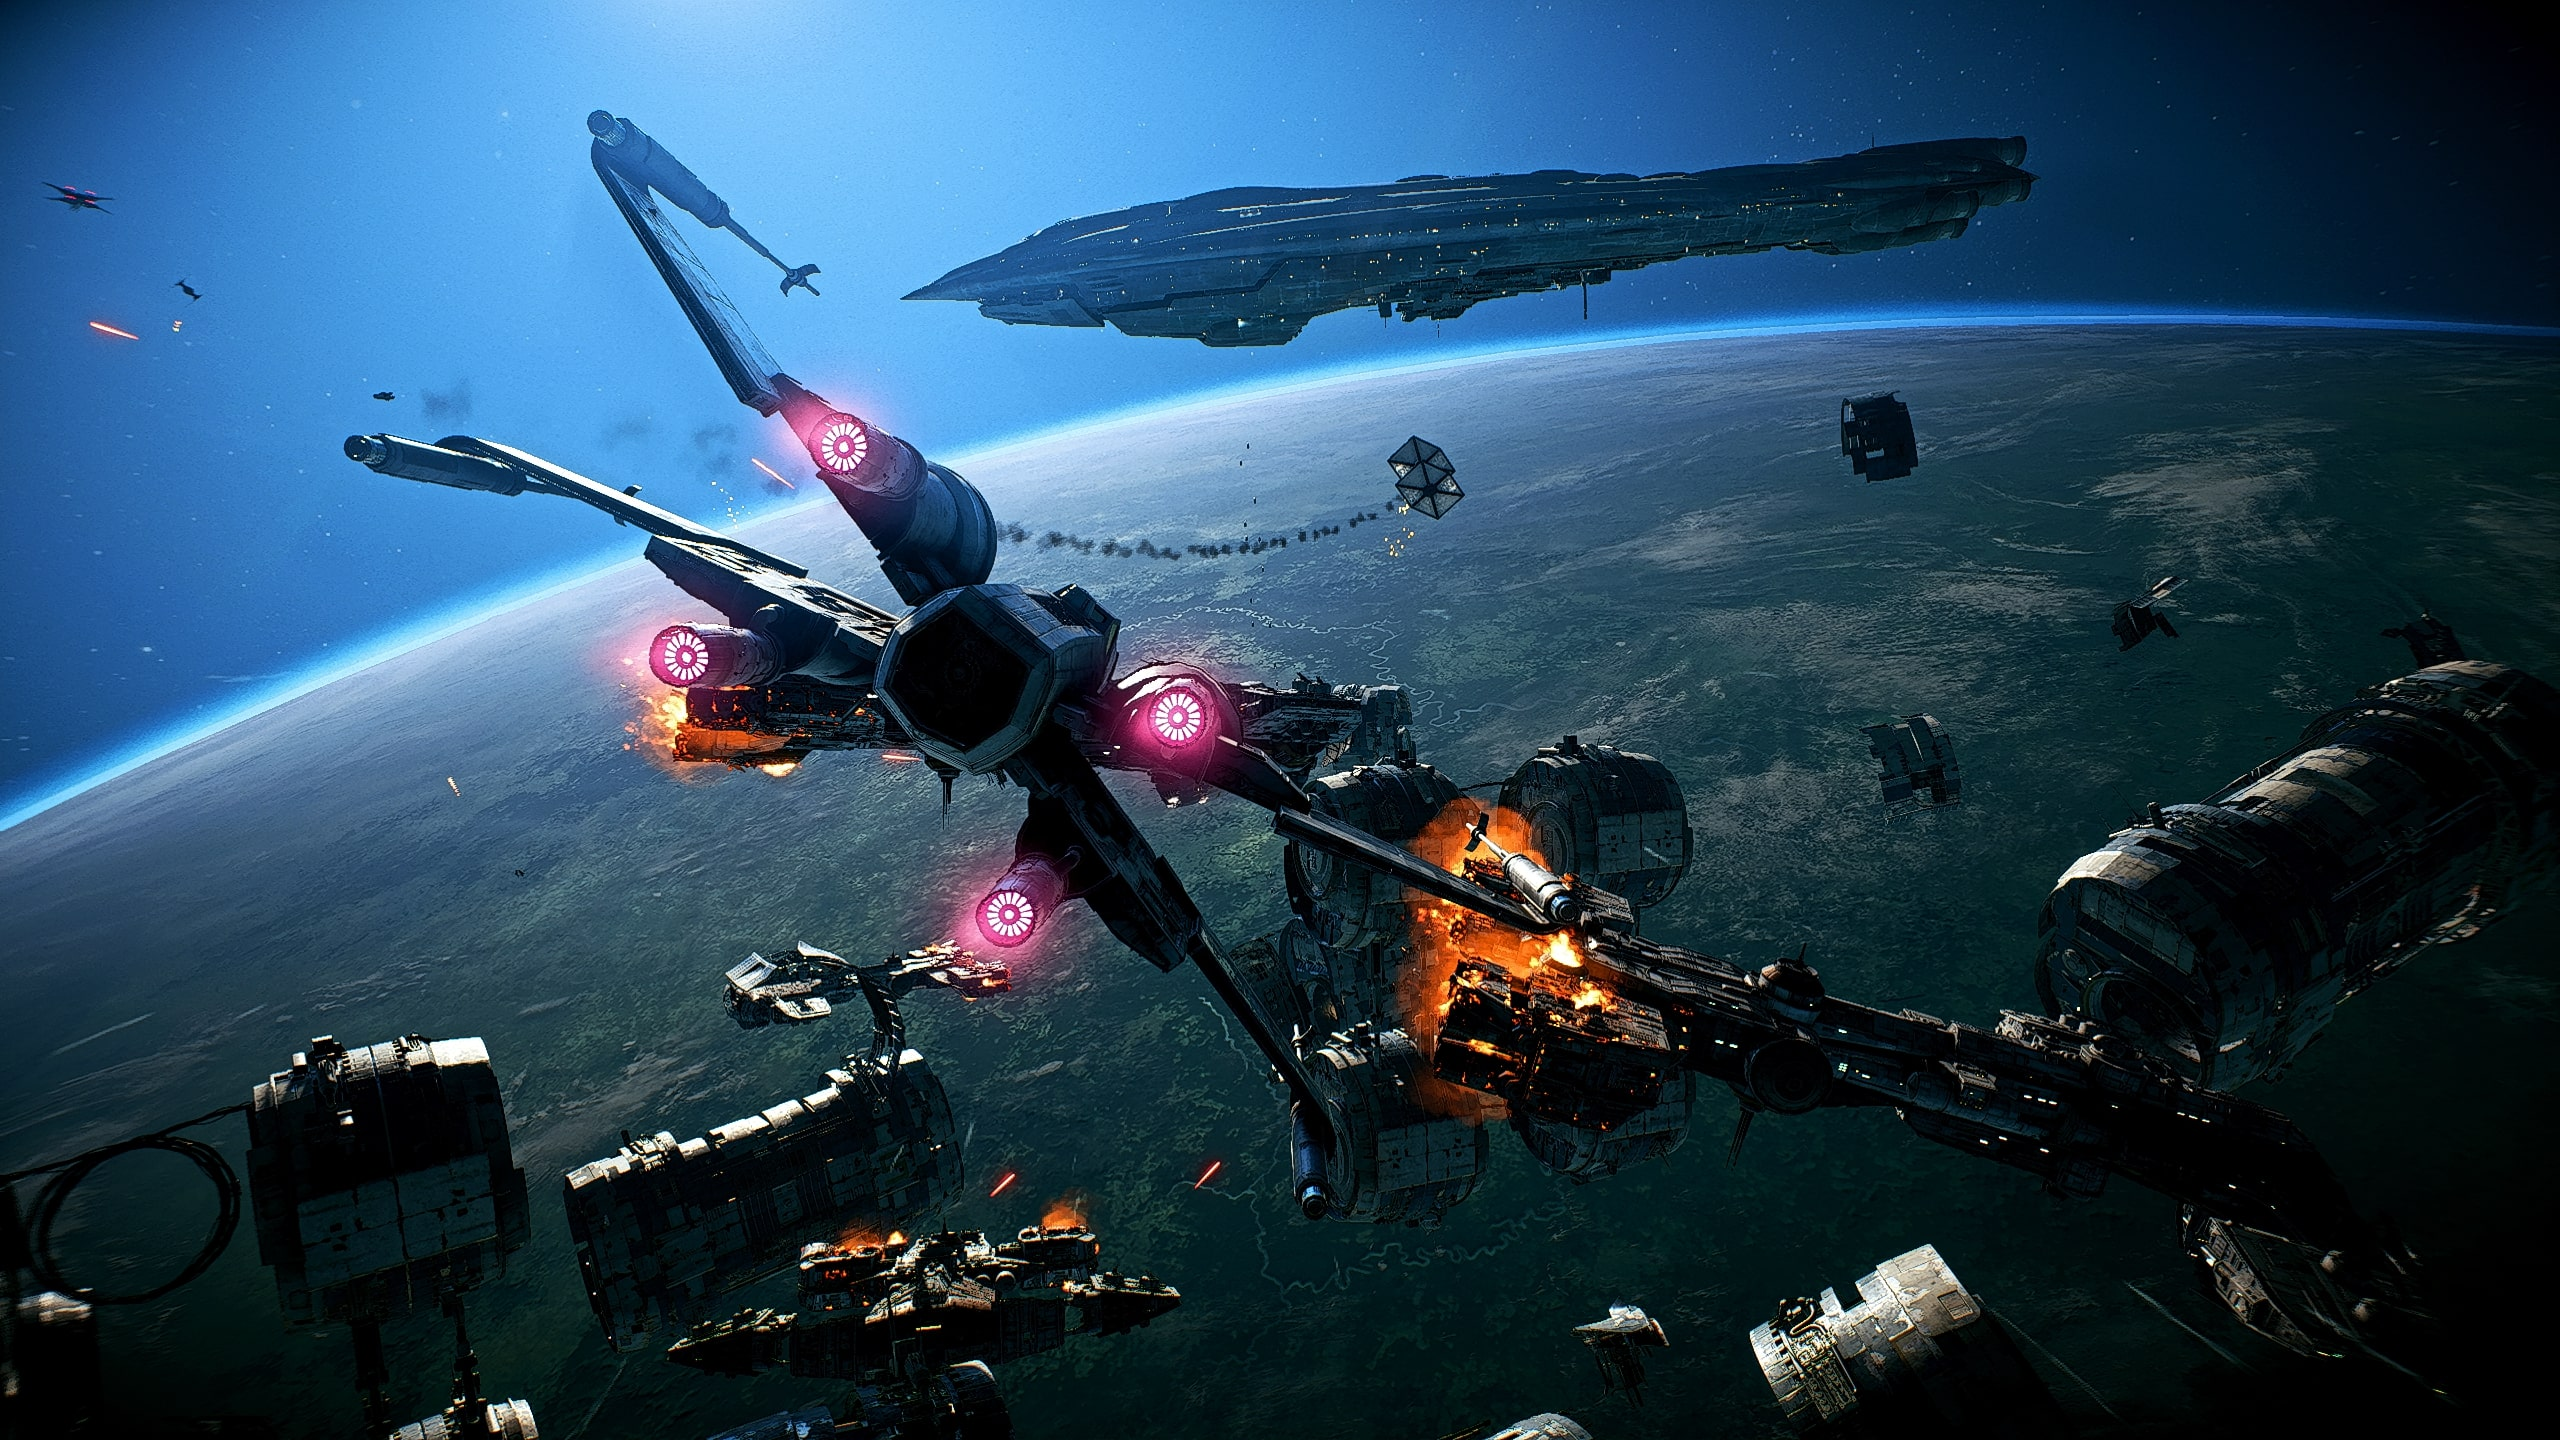 Star Wars Battlefront Wallpaper Posted By Ethan Peltier